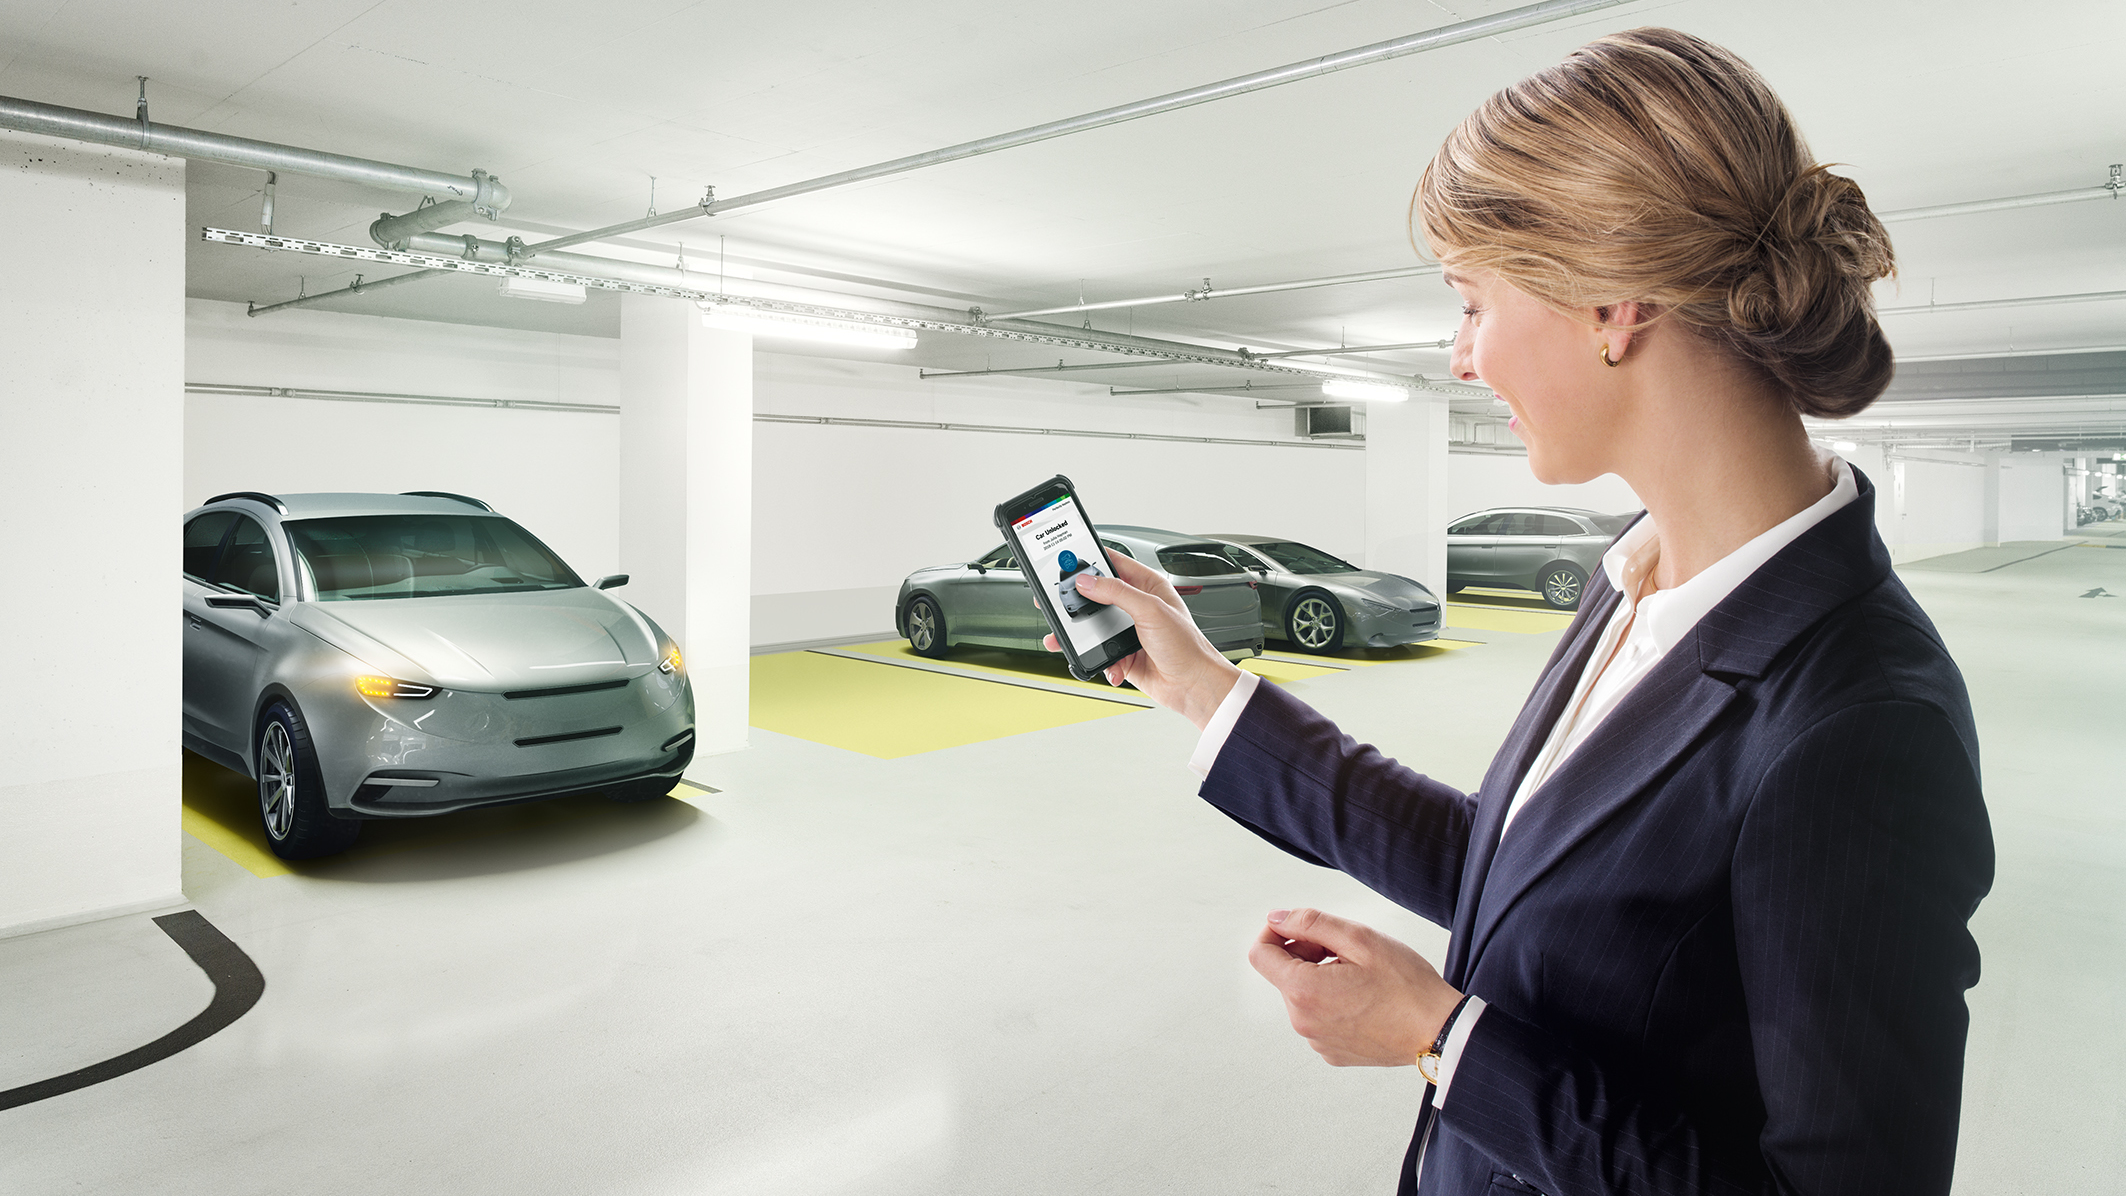 Perfectly Keyless from Bosch